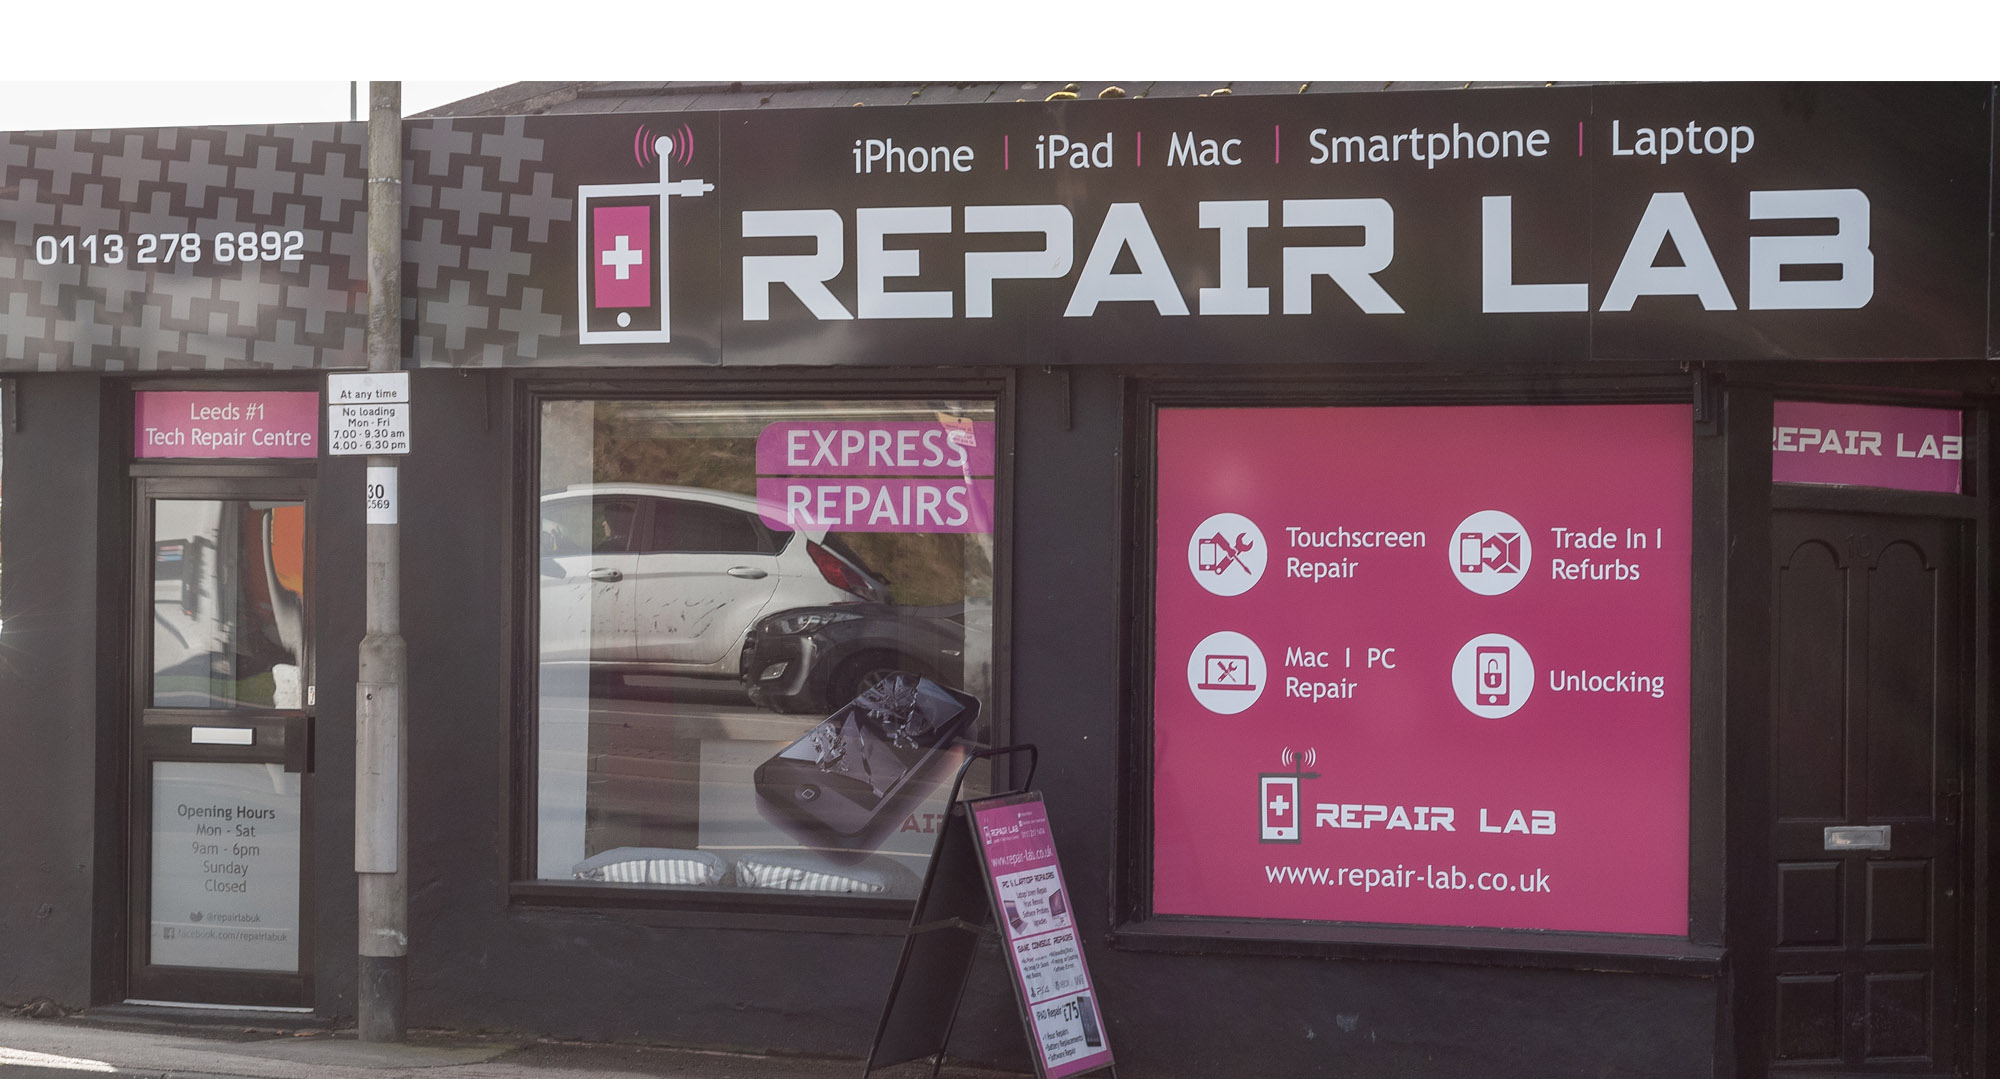 Repair Lab Kirkstall Leeds Front Of Shop